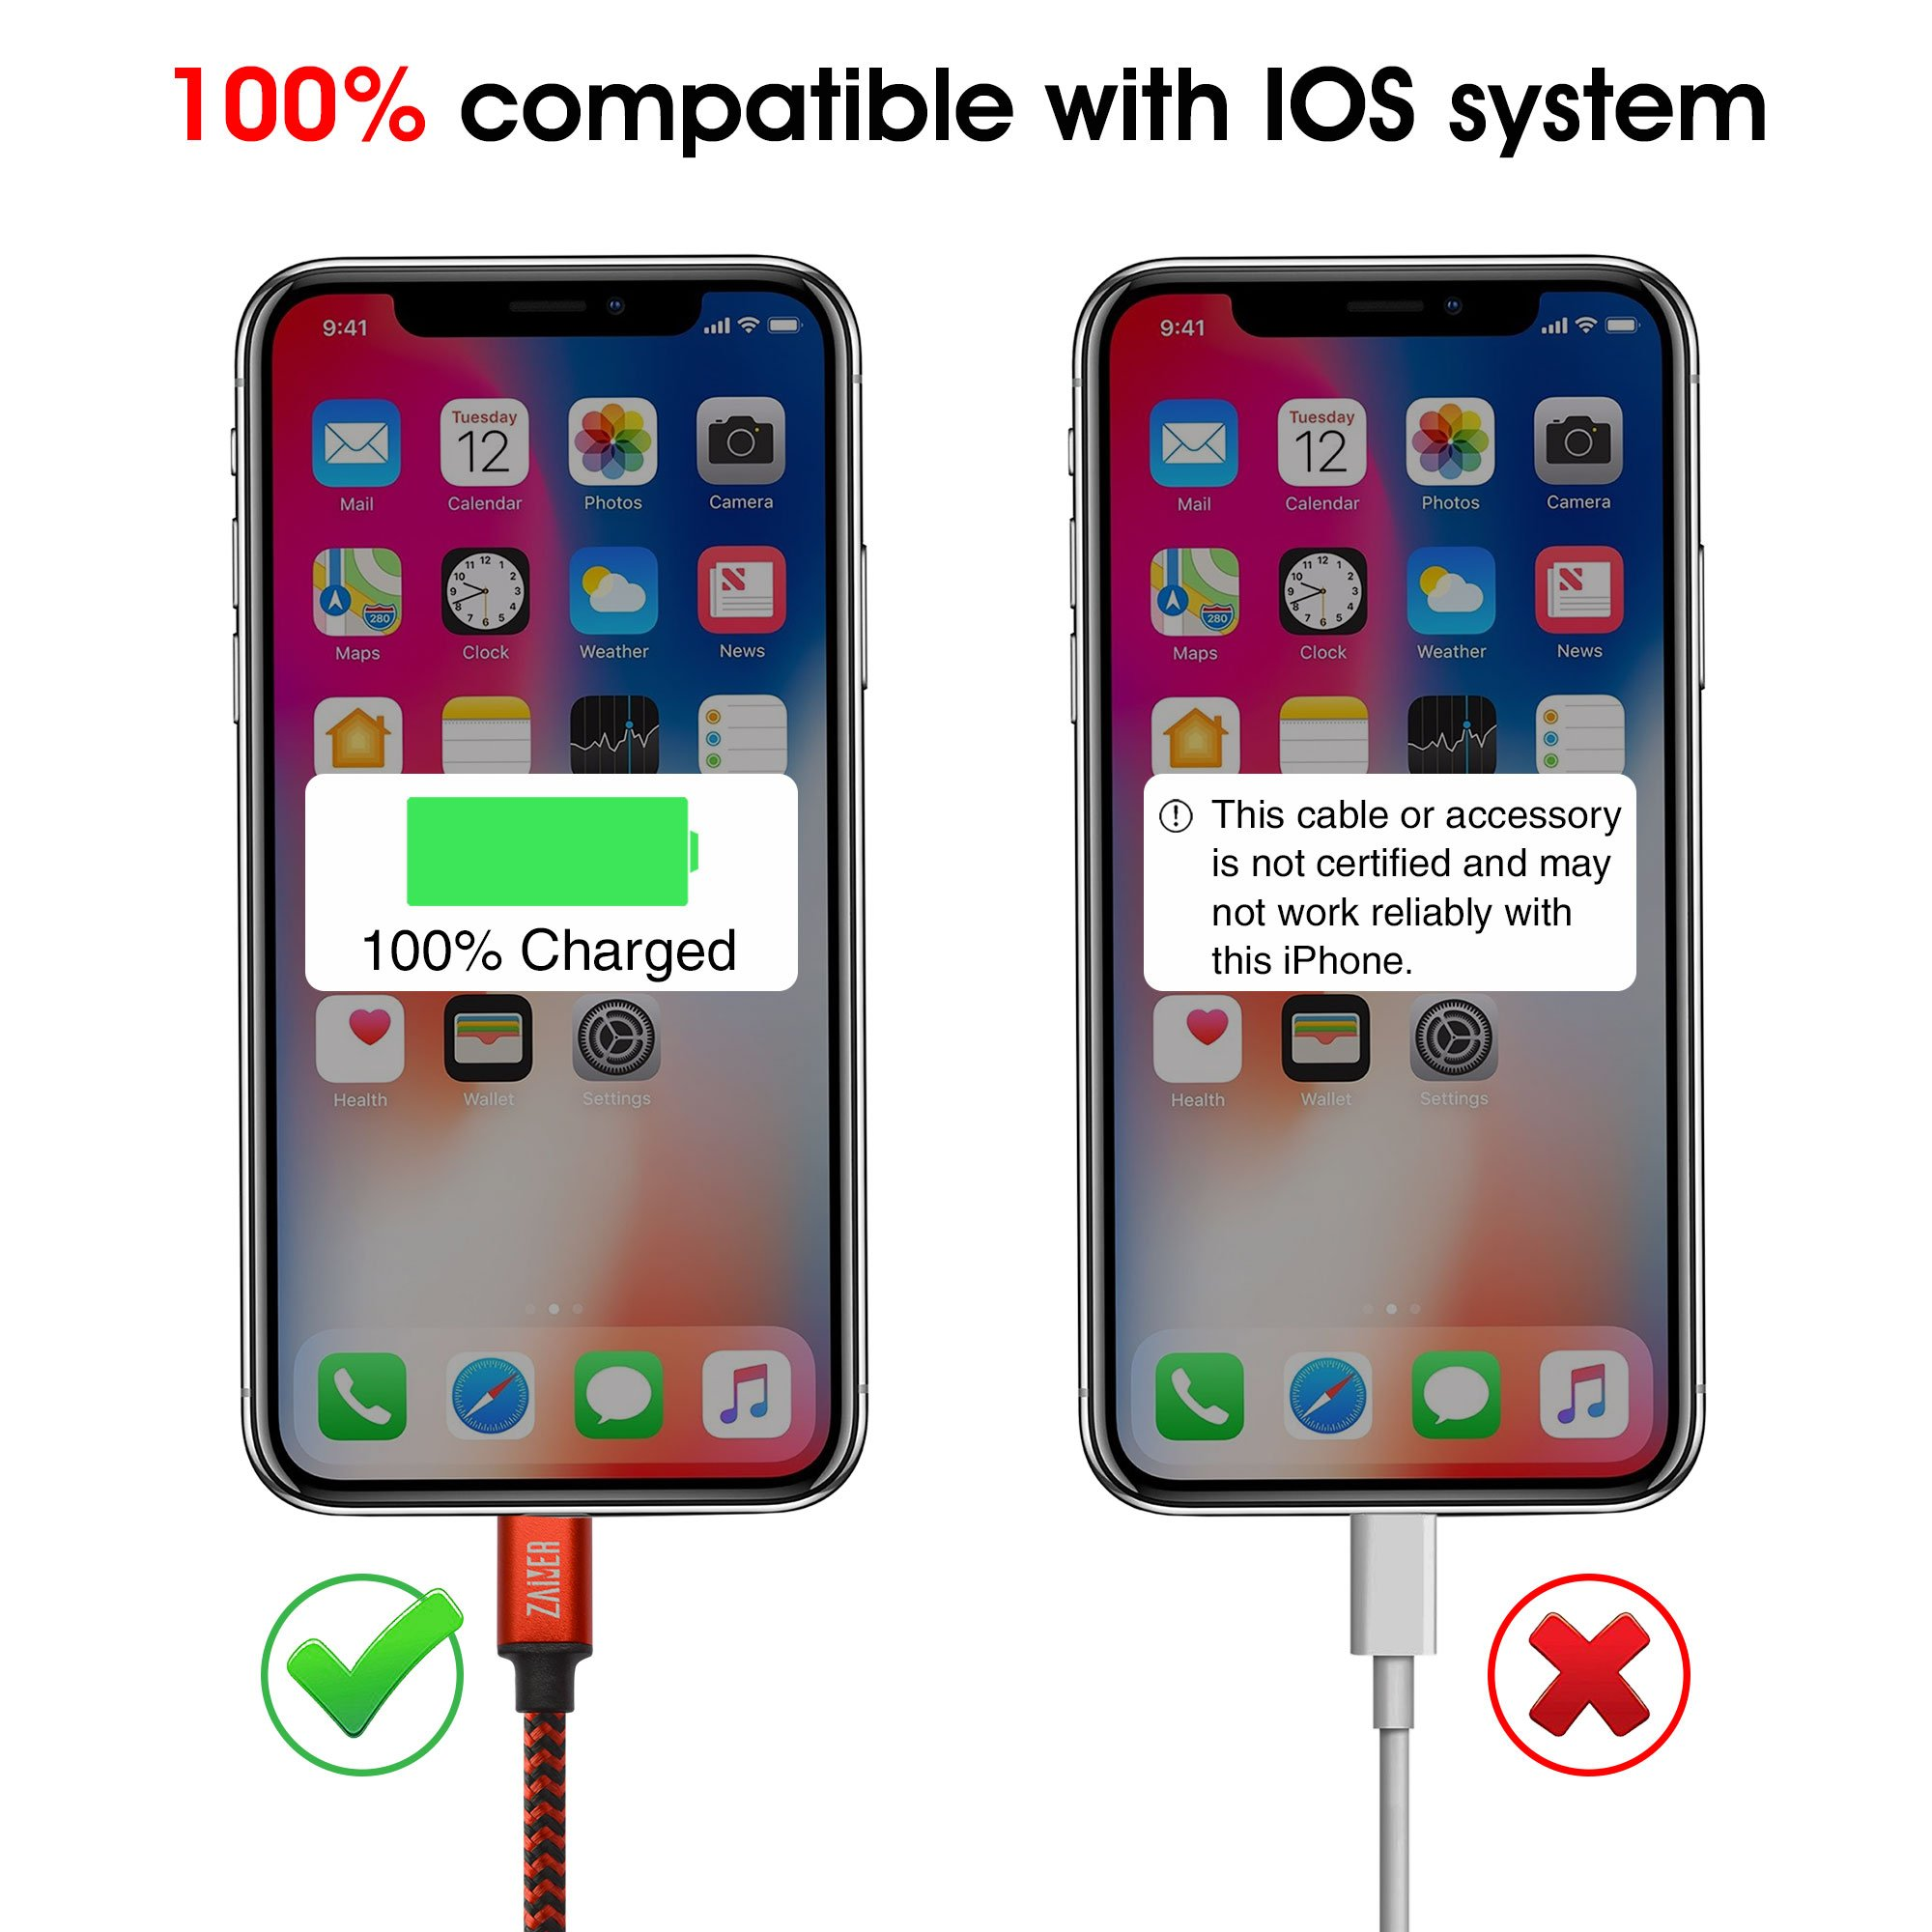 iPhone Charger Cable - Lightning Cable - 4Pack - 3FT 3FT 6FT 6FT -iPhone power cord pack for X 8 8 Plus 7 7 Plus 6 6S 6 Plus 5S SE iPad iPod by ZAiMER (Image #3)